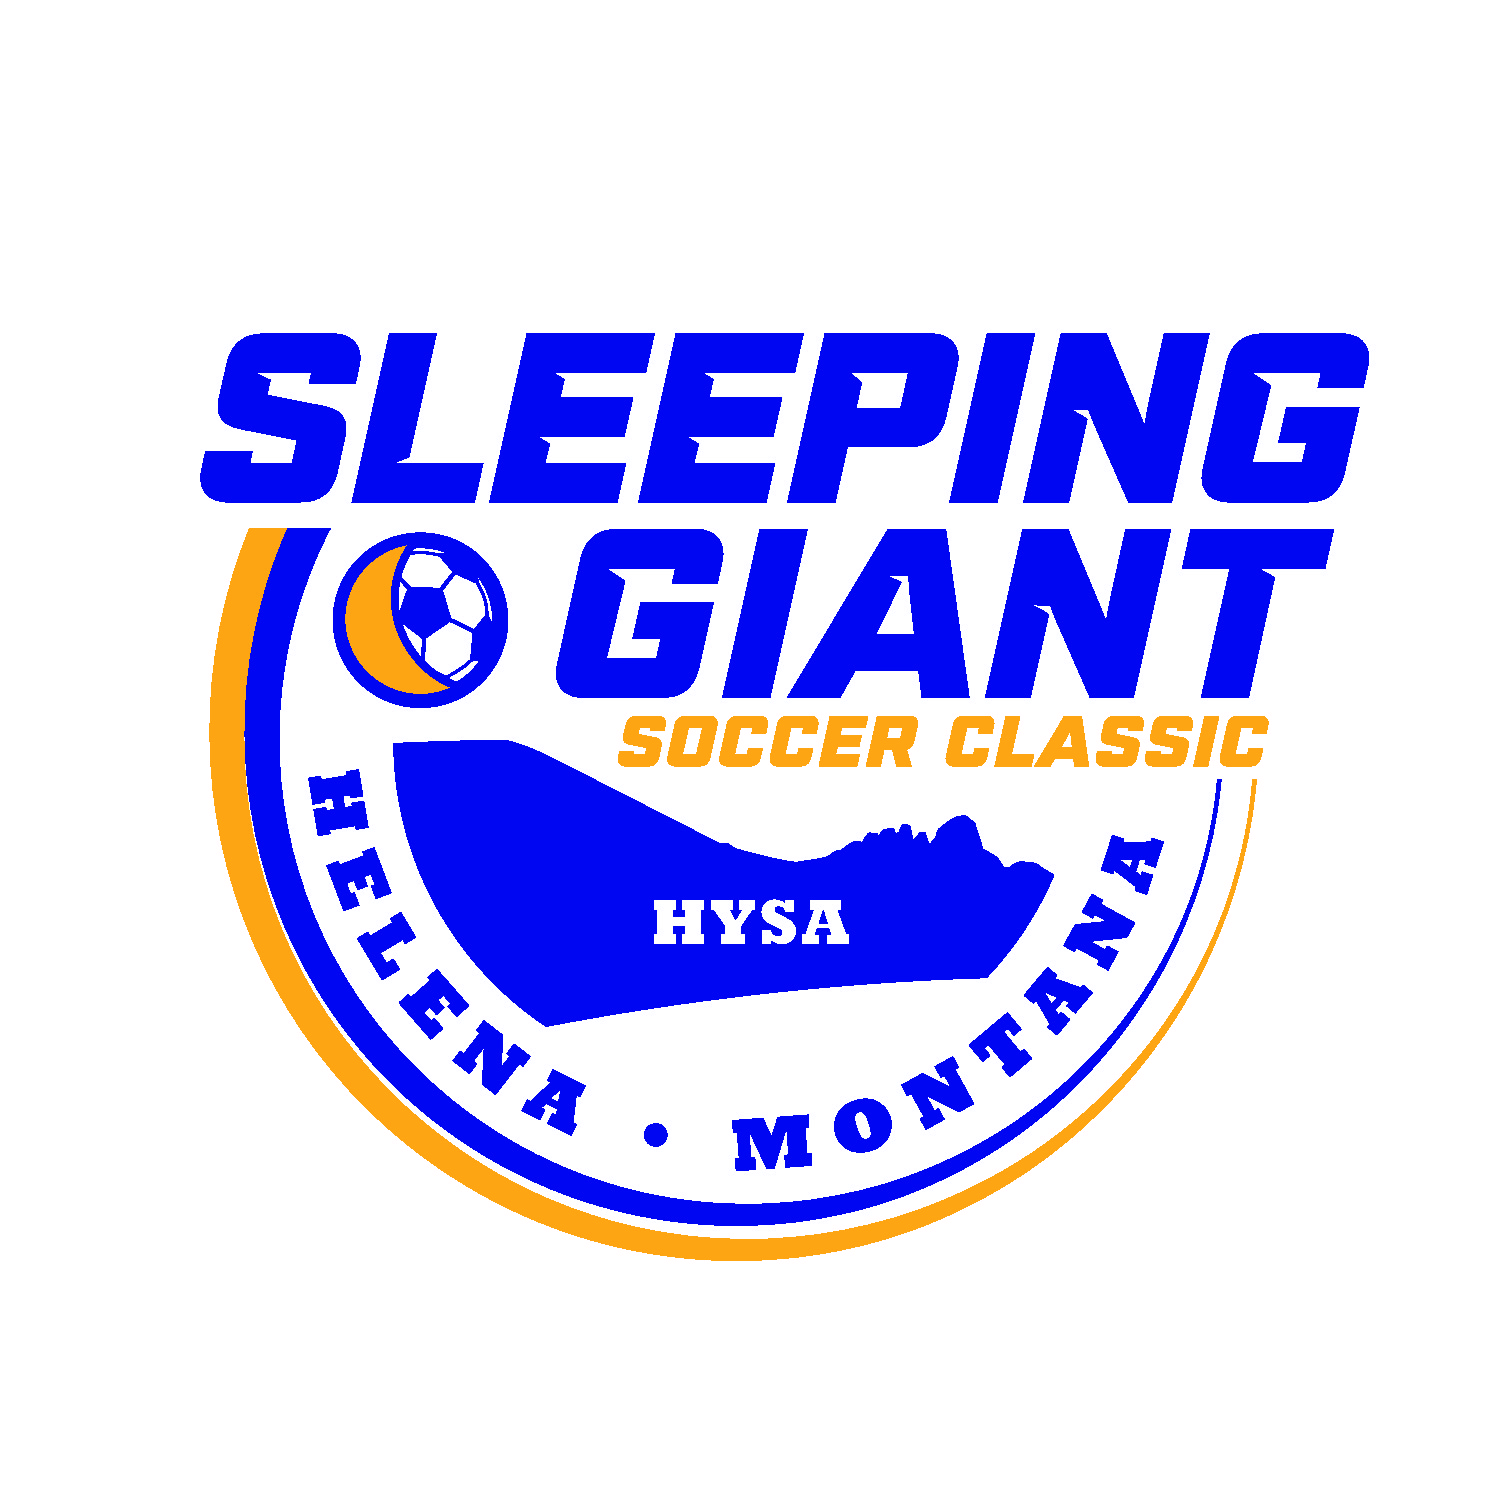 Sleeping Giant 4th Annual 2016 Schedule & Fields Information